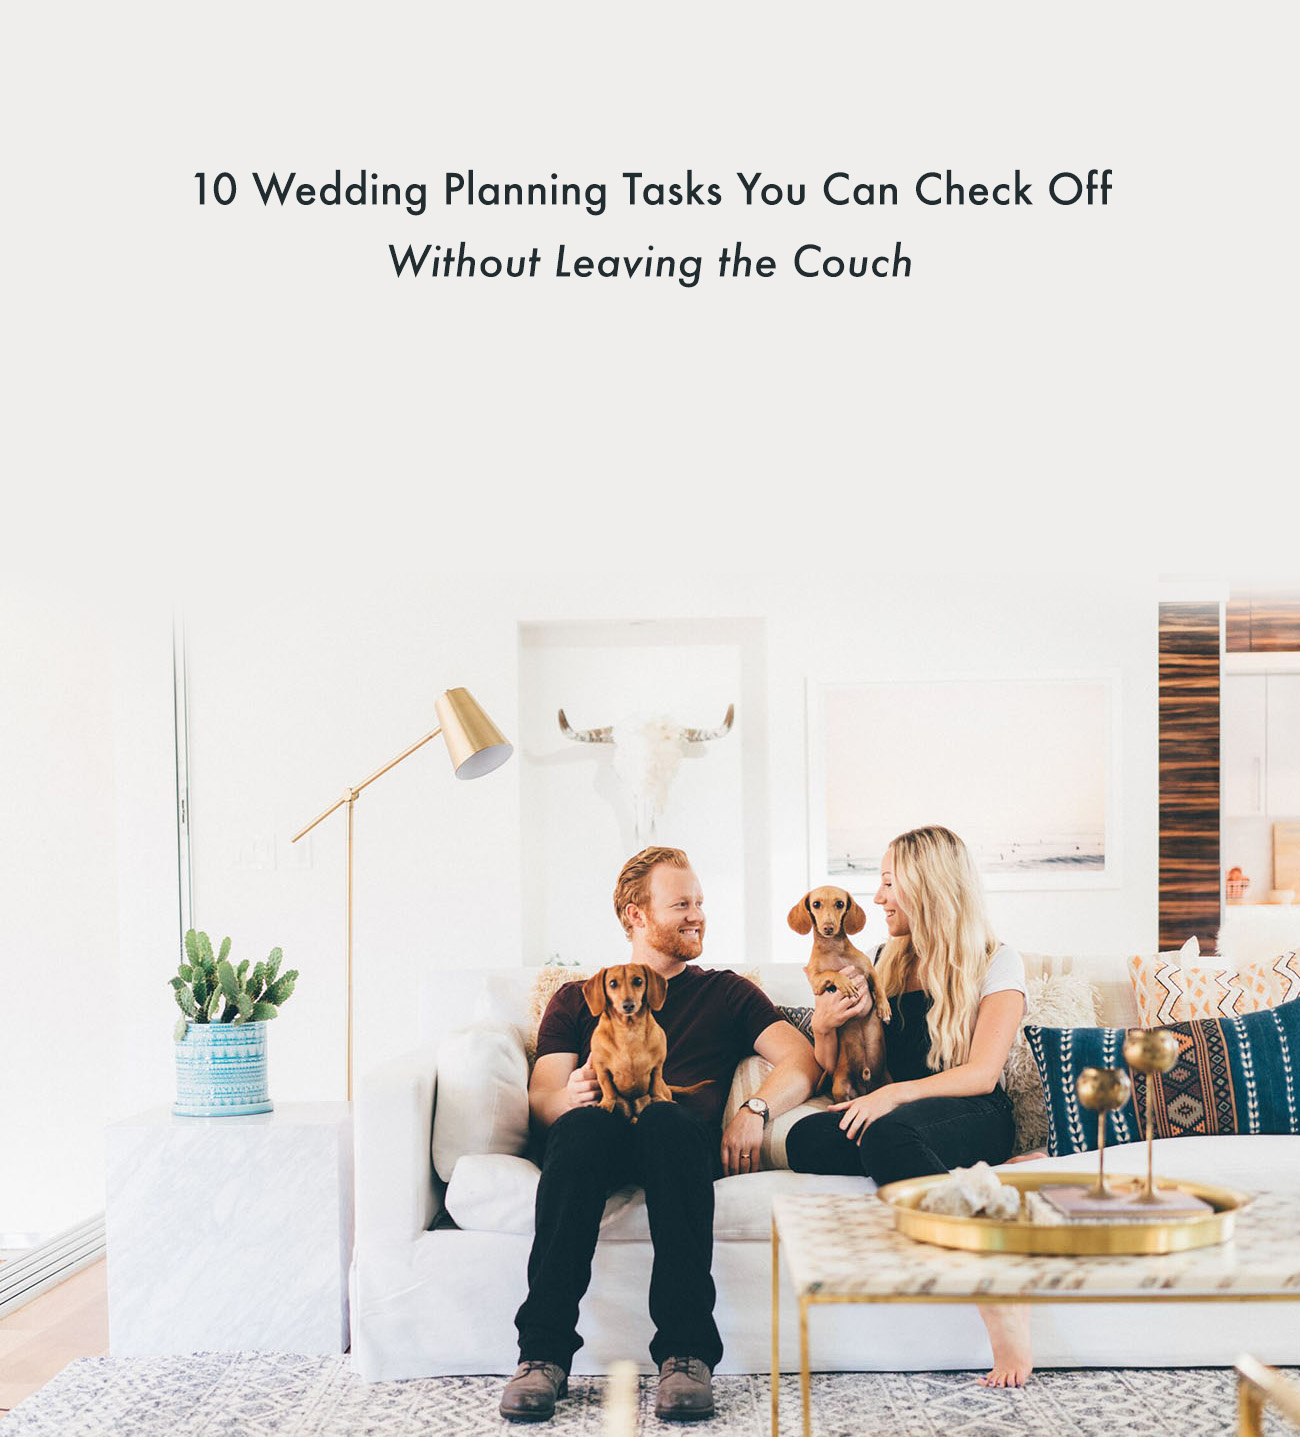 10 Wedding Planning Tasks You Can Check Off Without Leaving the Couch